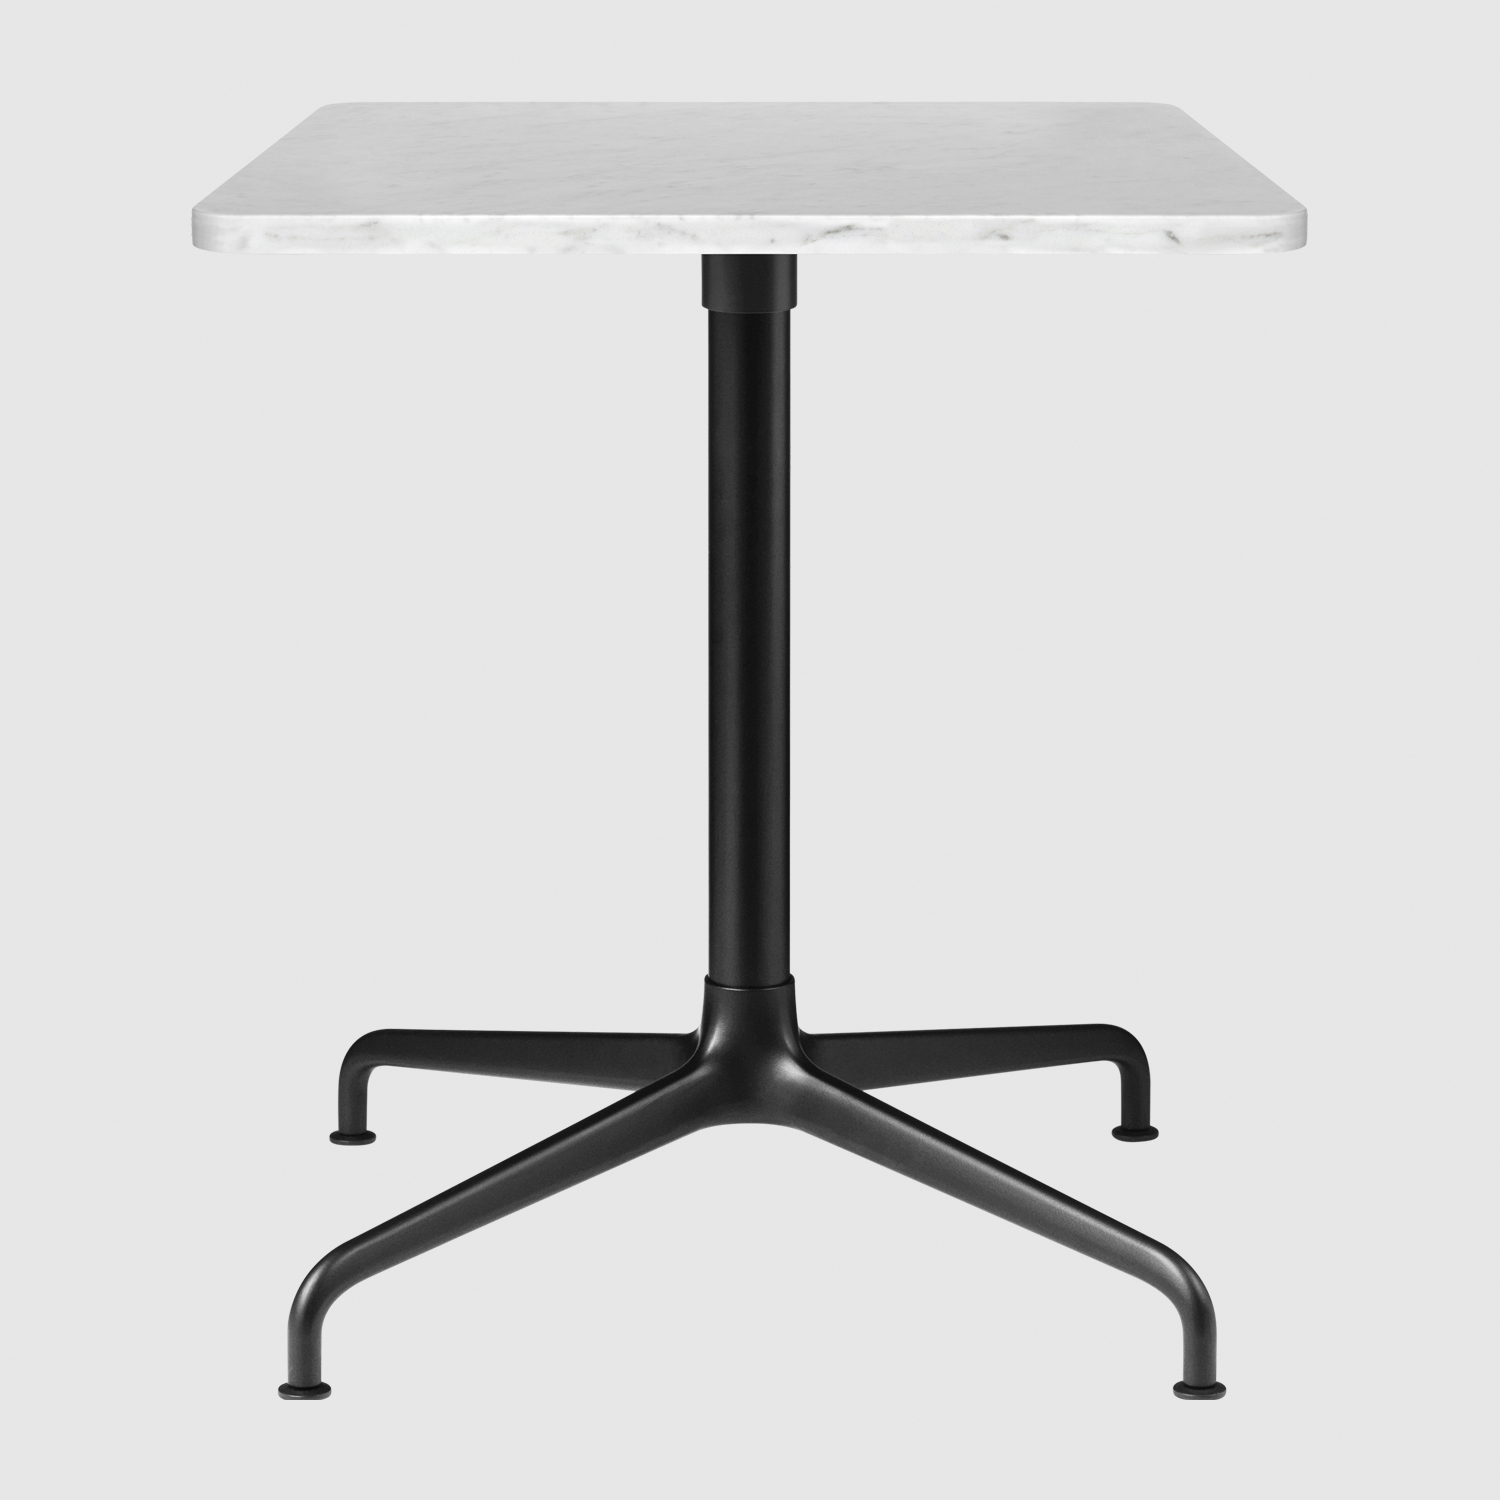 Lounge Table: H60 cm, 60x60 or 75x75 cm